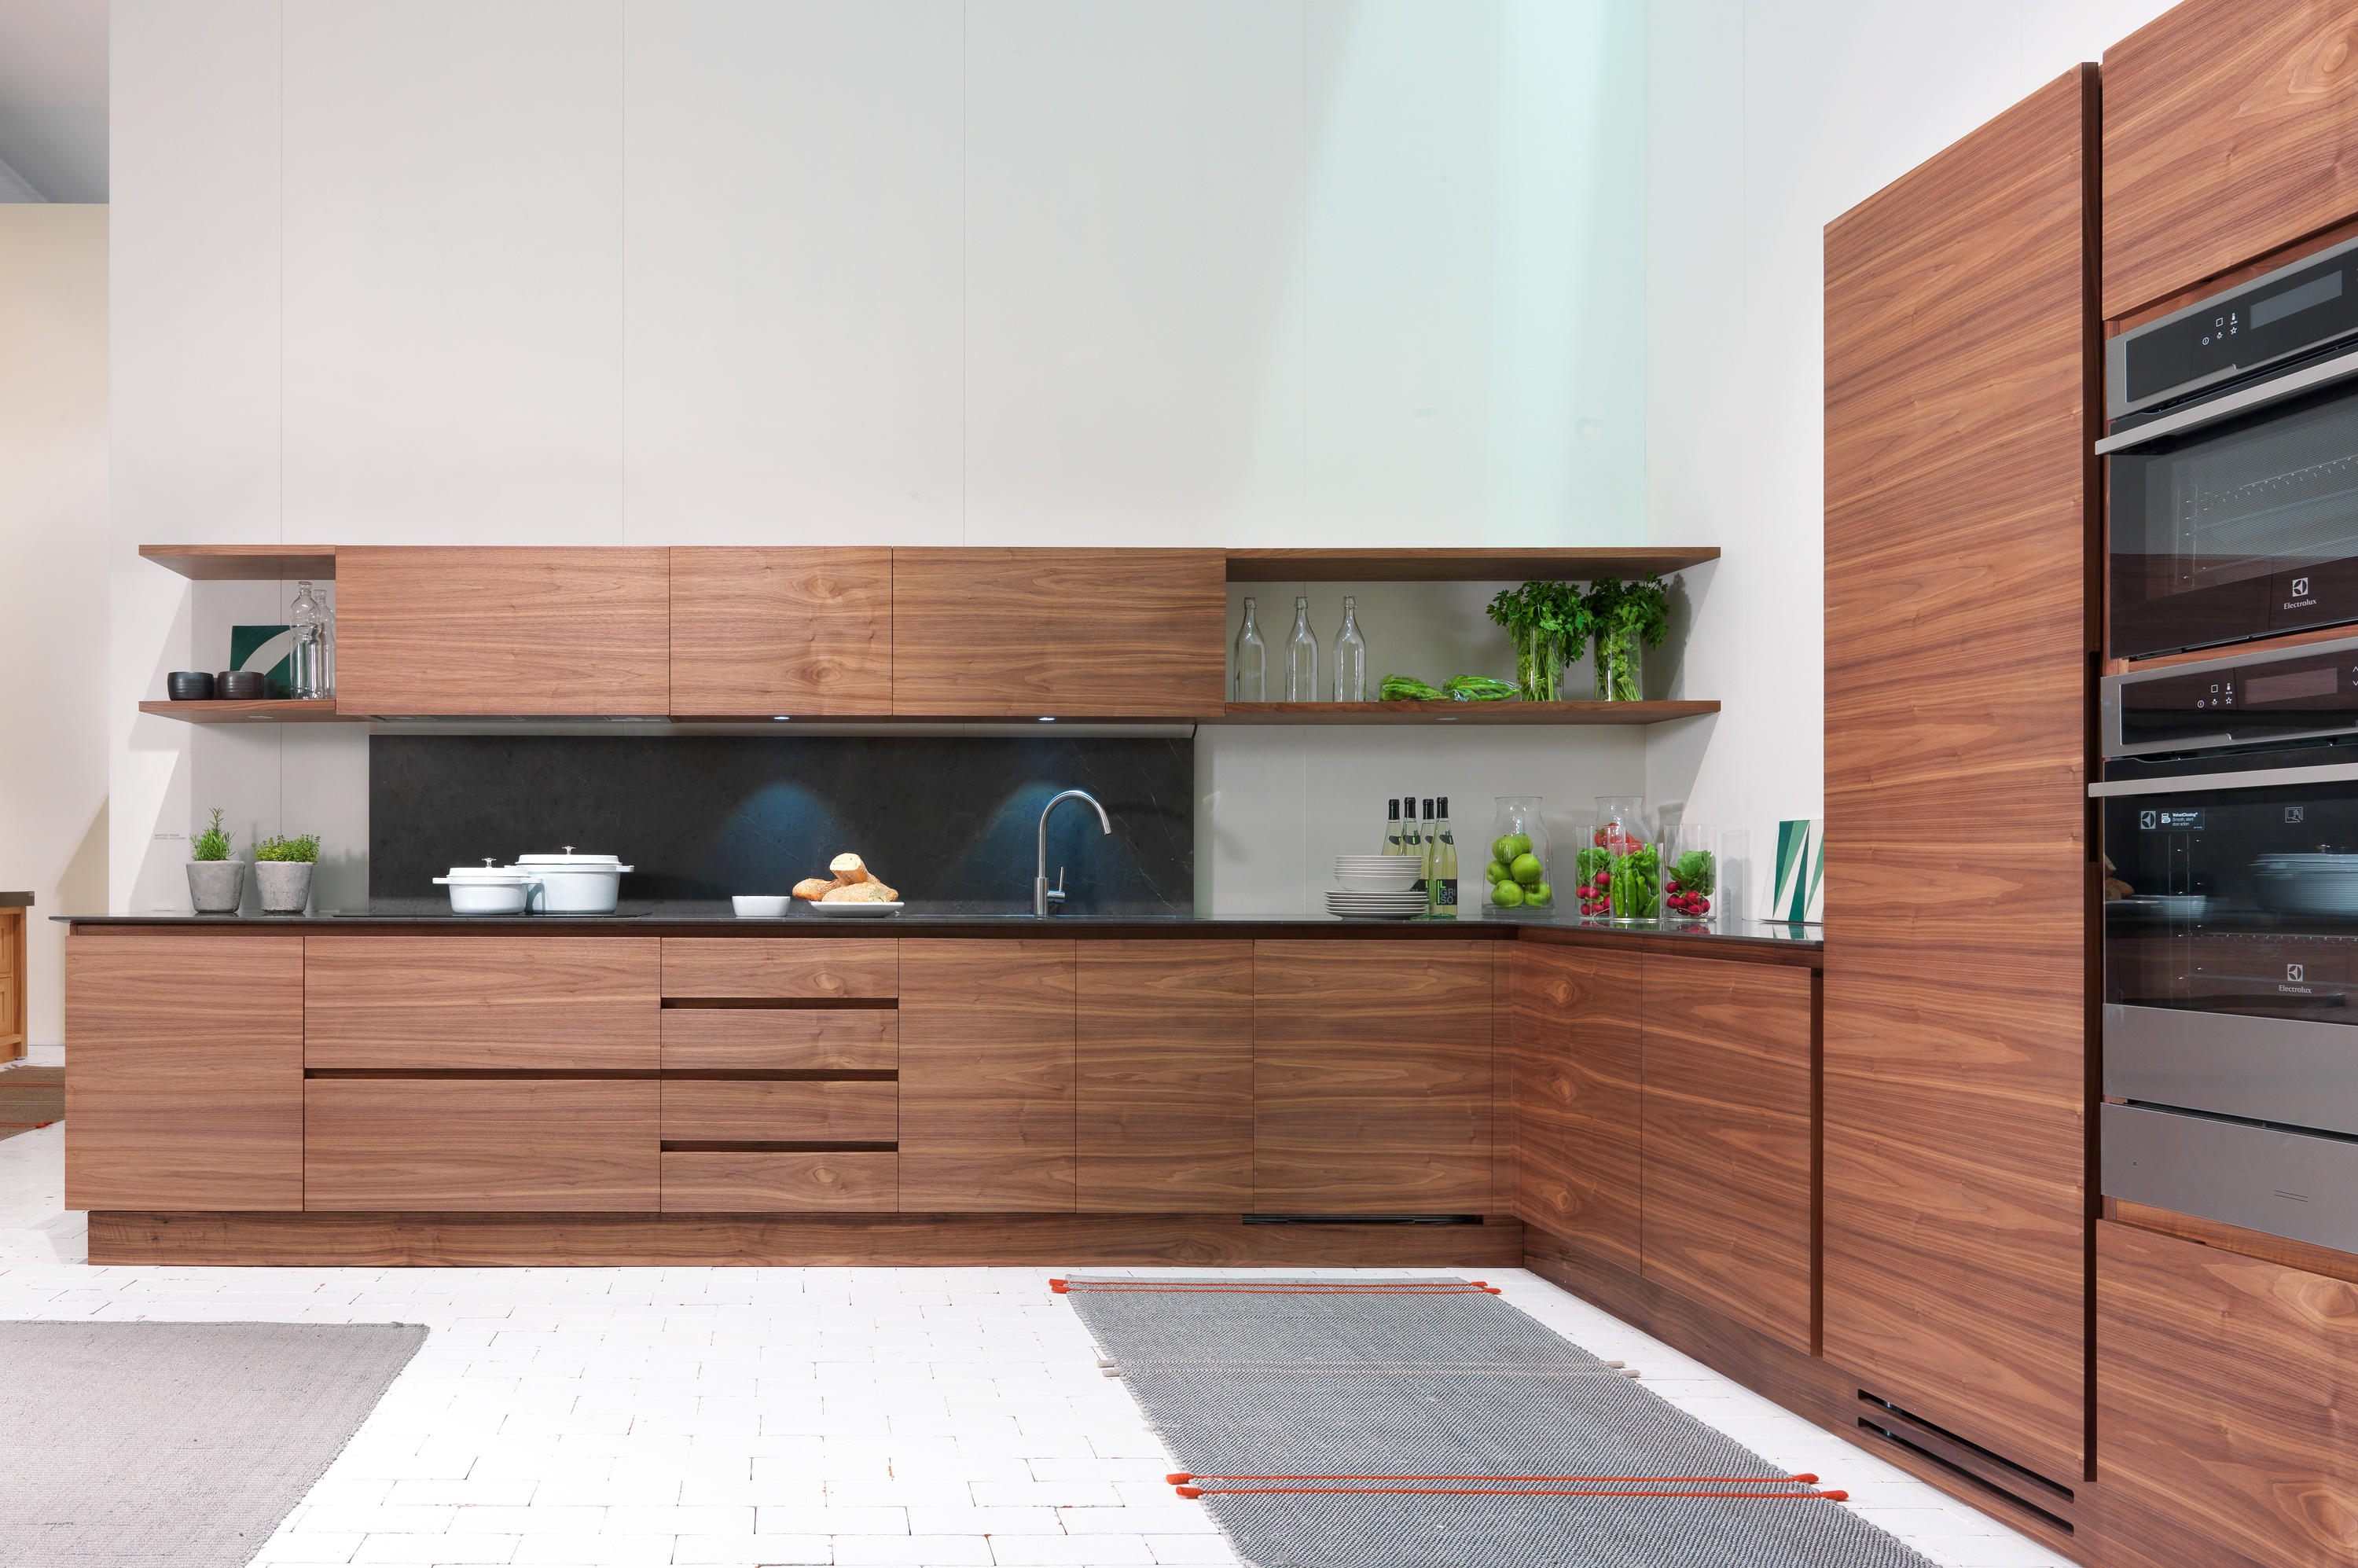 Cucina The Kitchen Company La Cucina Fitted Kitchens From Riva 1920 Architonic